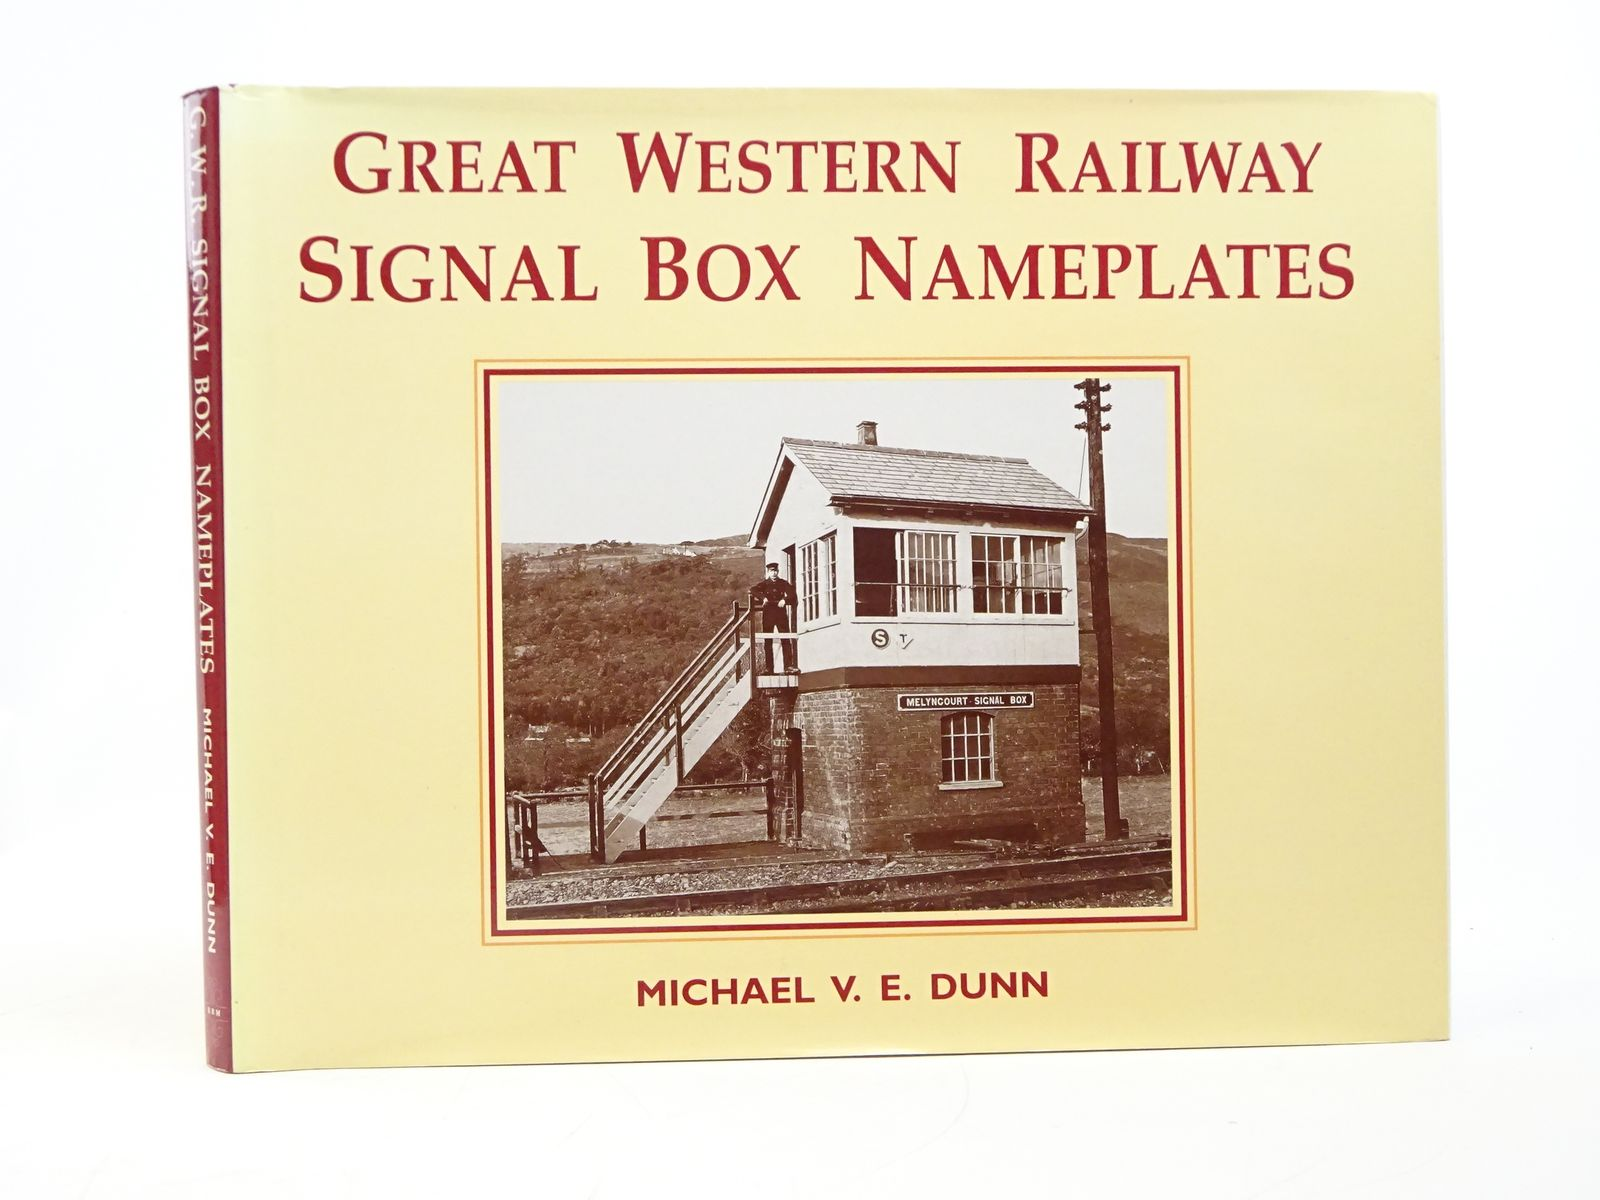 Photo of GREAT WESTERN RAILWAY SIGNAL BOX NAMEPLATES: AN ESSAY IN ELEGANCE written by Dunn, Michael V.E. published by Kidderminster Railway Museum (STOCK CODE: 1818071)  for sale by Stella & Rose's Books